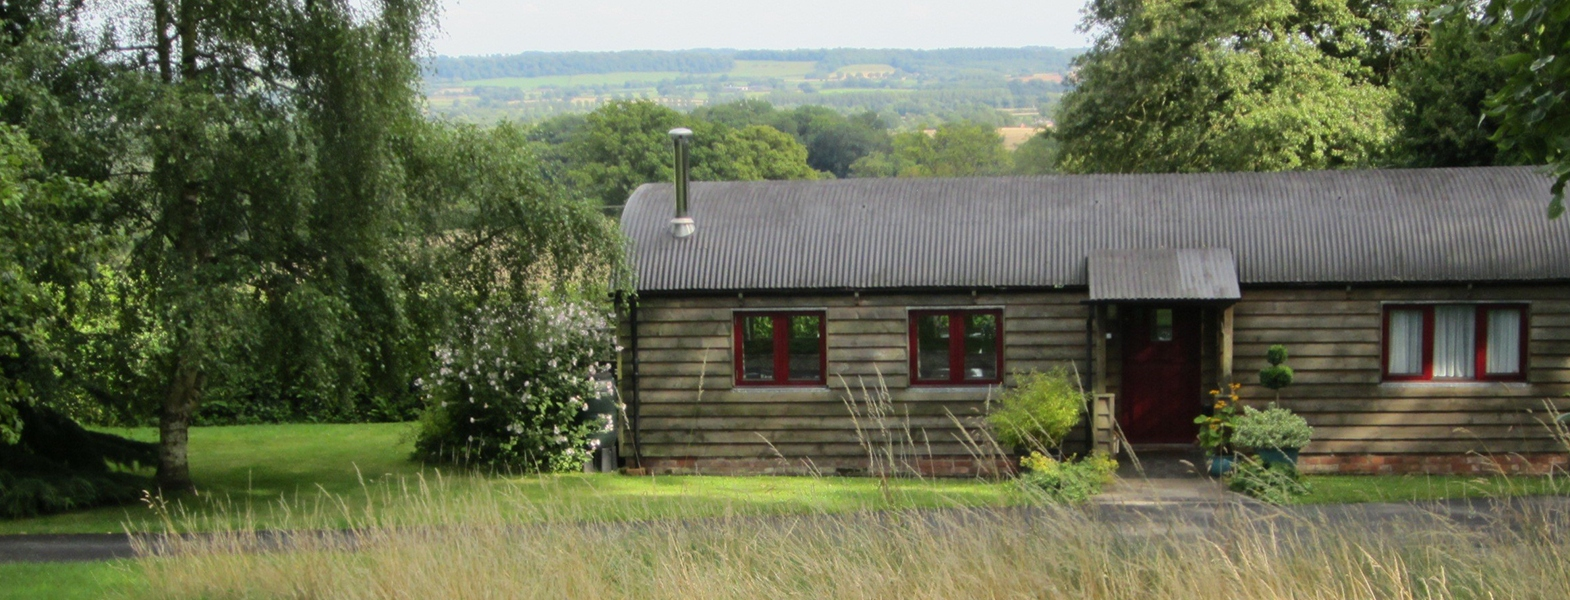 Self-Catering Holiday Barn